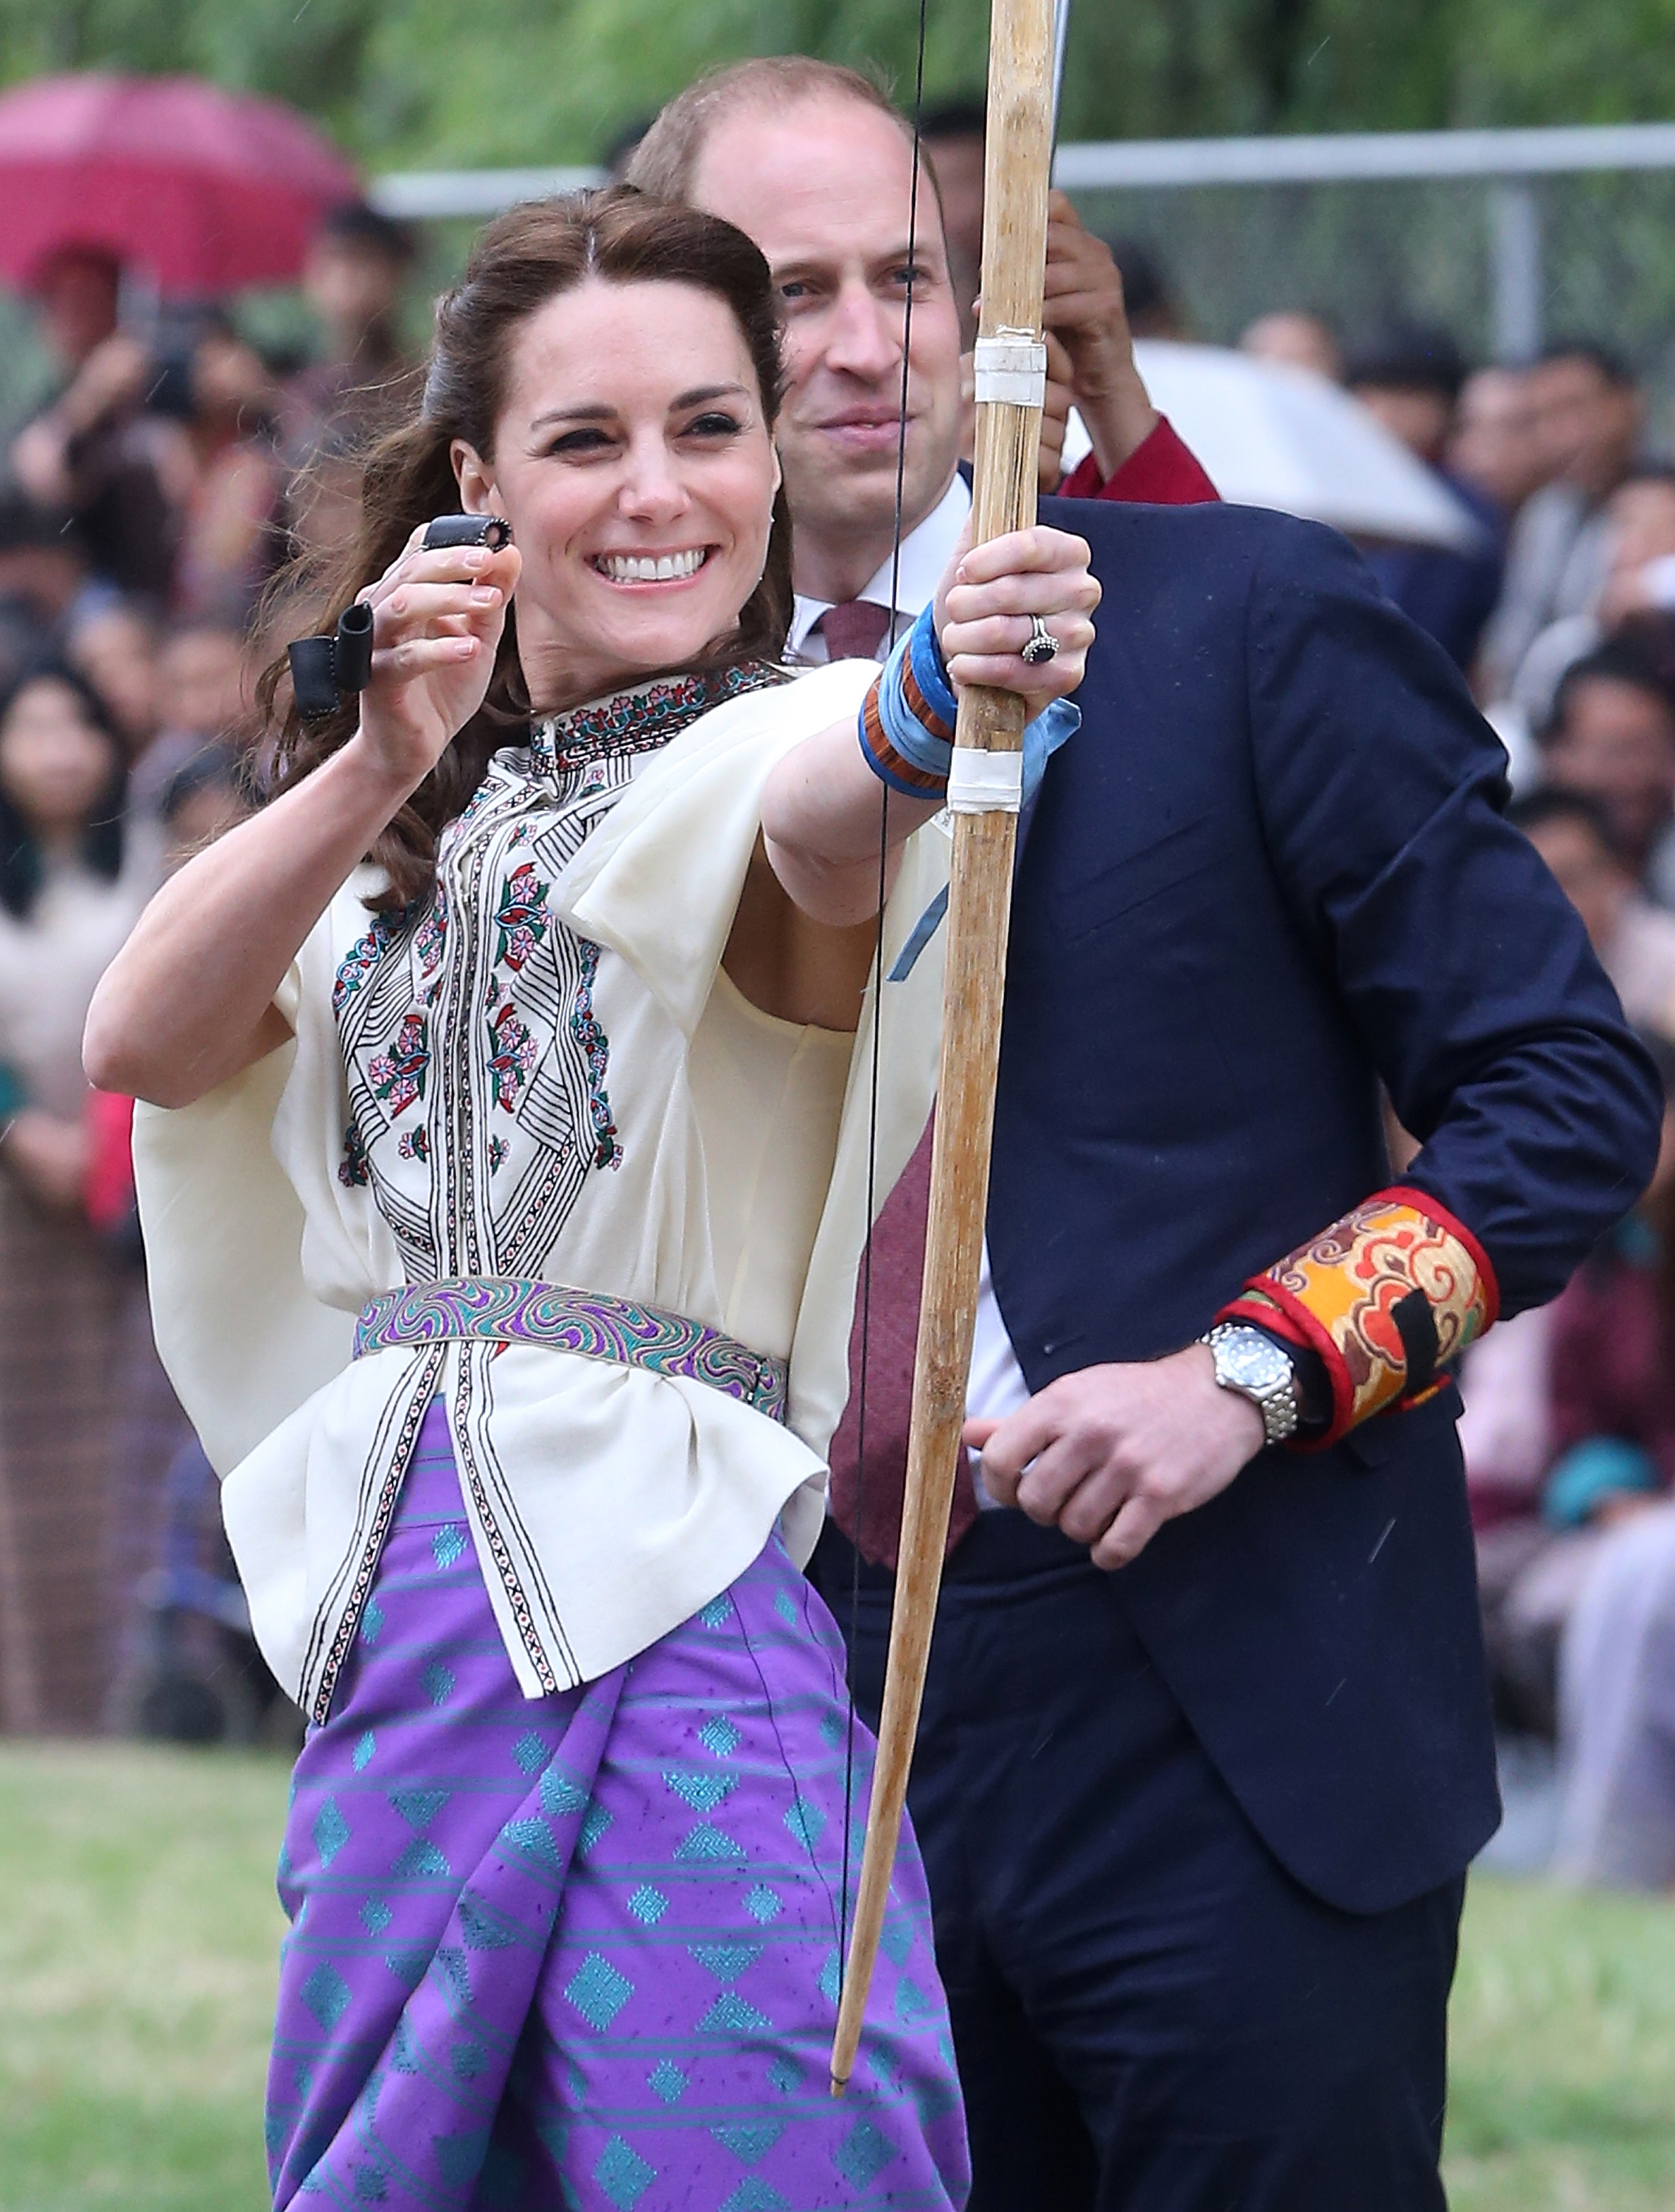 Catherine, Duchess of Cambridge and Prince William, Duke of Cambridge laugh while taking part in archery, Bhutan's national sport,  in Thimphu, Bhutan on April 14, 2016.